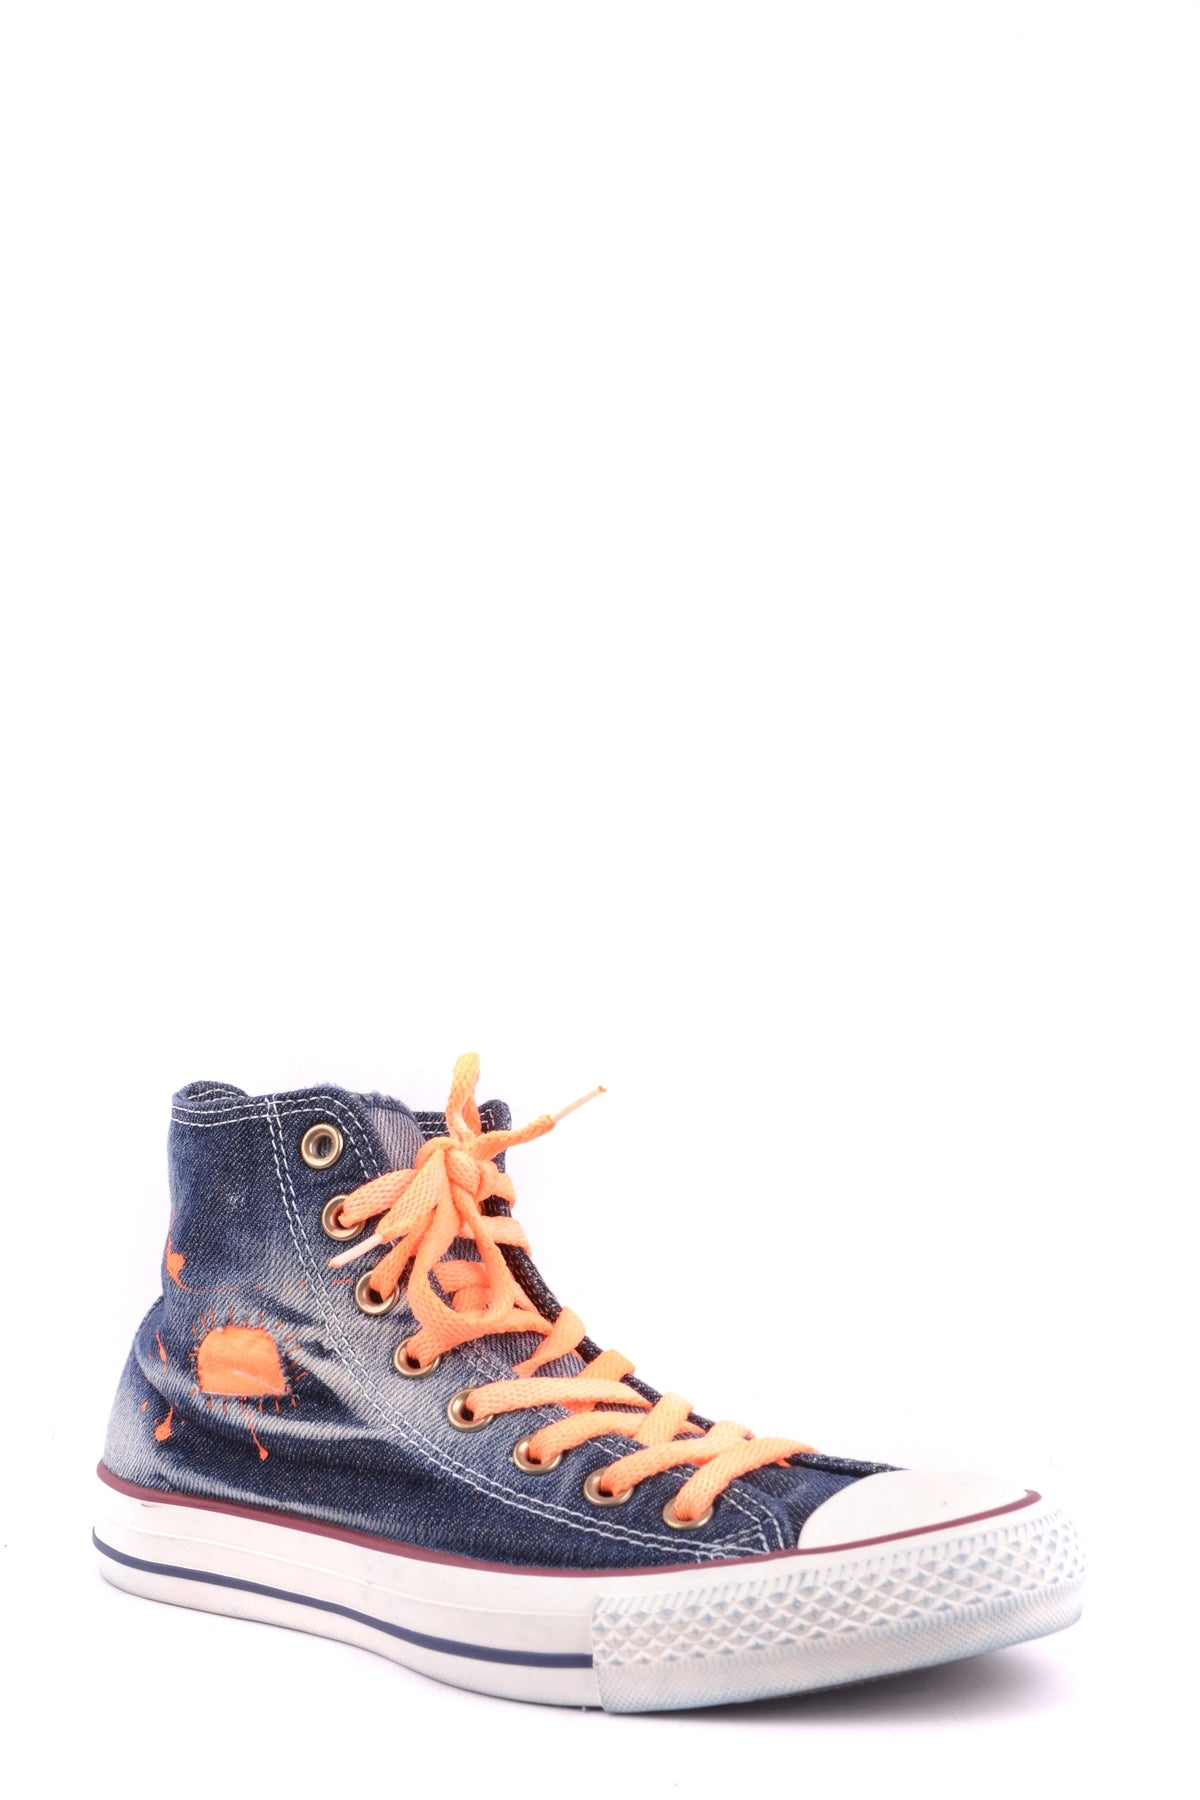 Shoes Converse All Star-Sneakers - WOMAN-Product Details Type Of Accessory: ShoesTerms: New With LabelYear: 2017Main Color: MulticolorSeason: Spring / SummerMade In: VietnamSize: EuGender: WomanComposition: Tissue 100%-Keyomi-Sook